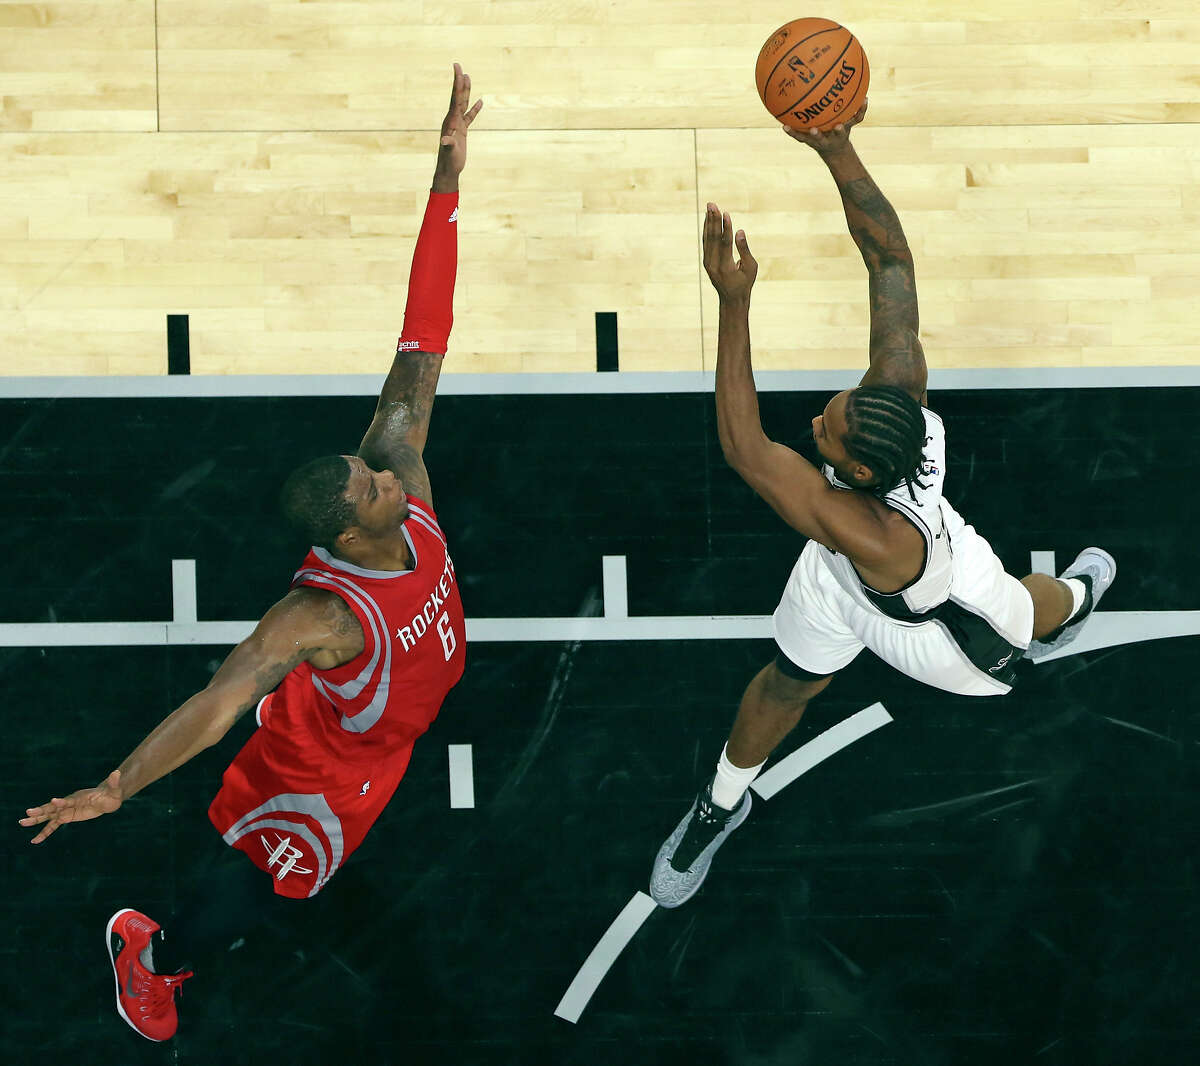 2012 - Terrence Jones was drafted to Houston with the No. 18 pick.